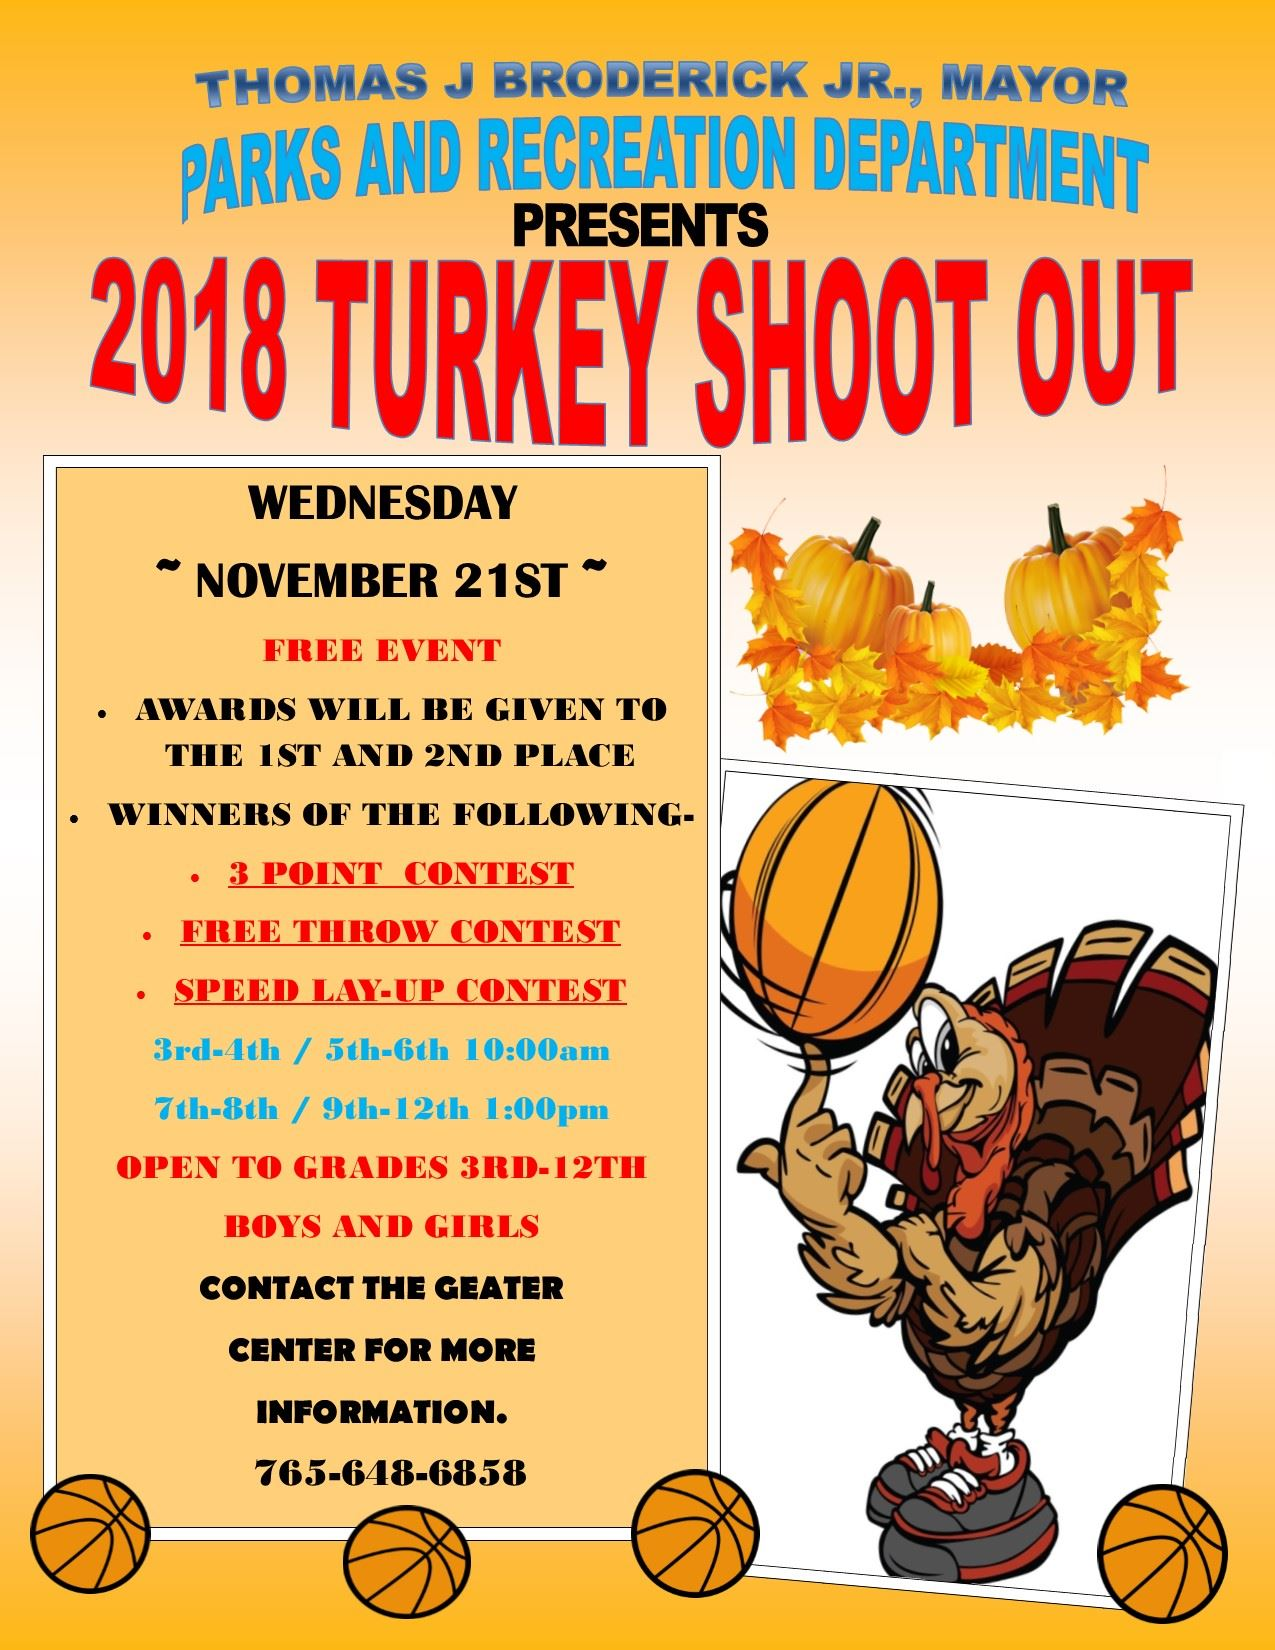 2018 Turkey Shoot Out